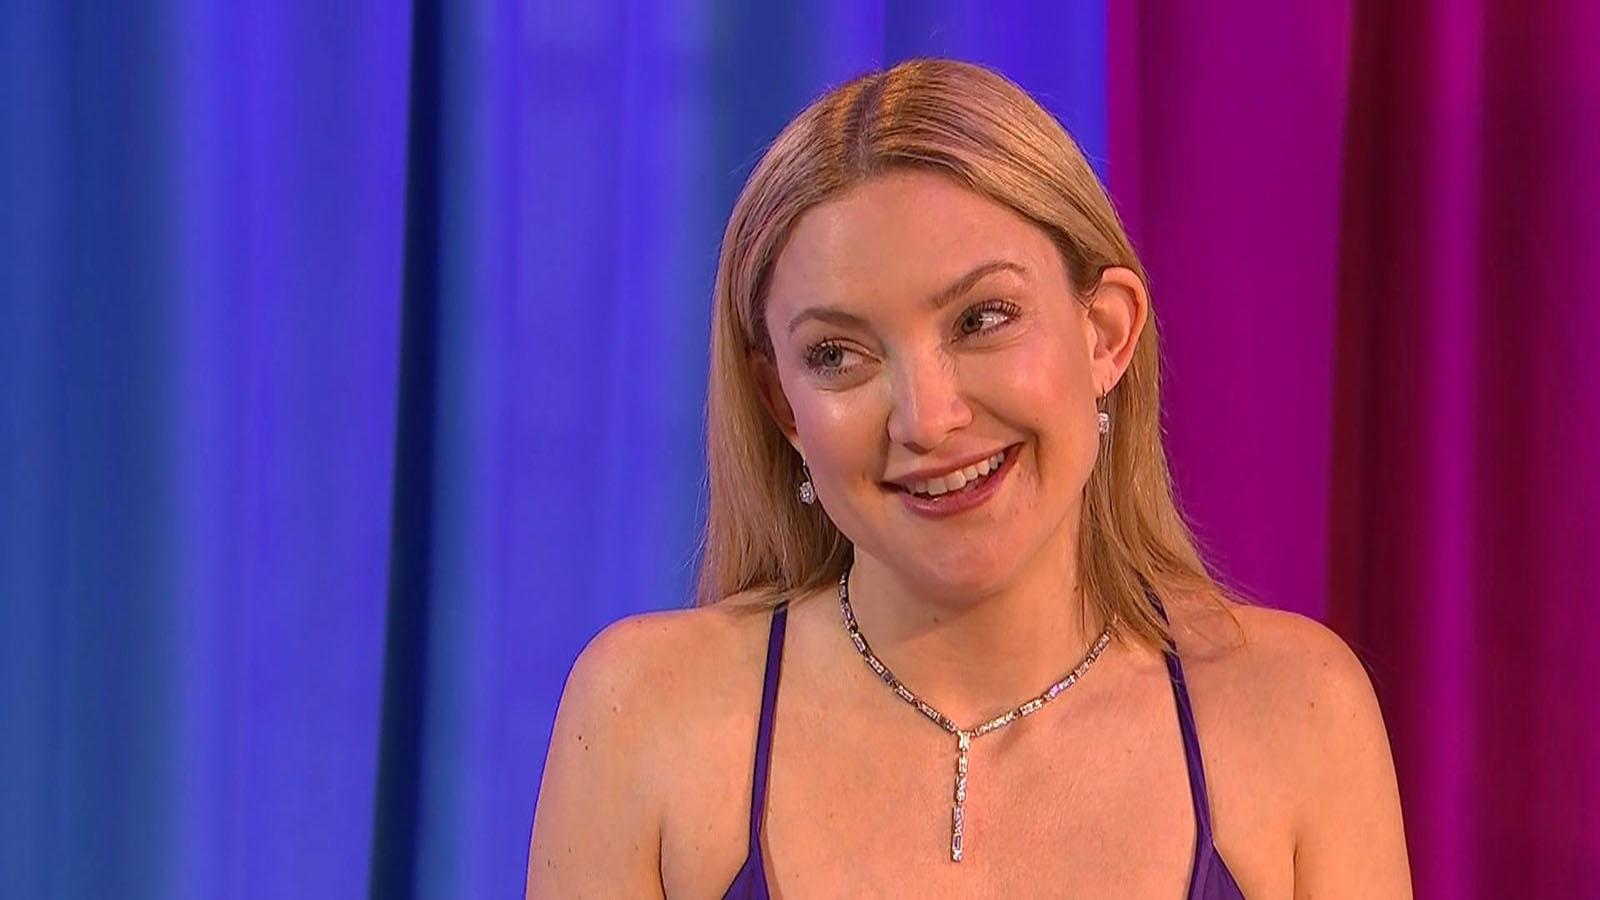 Kate Hudson: Does She Want To Get Married Again?